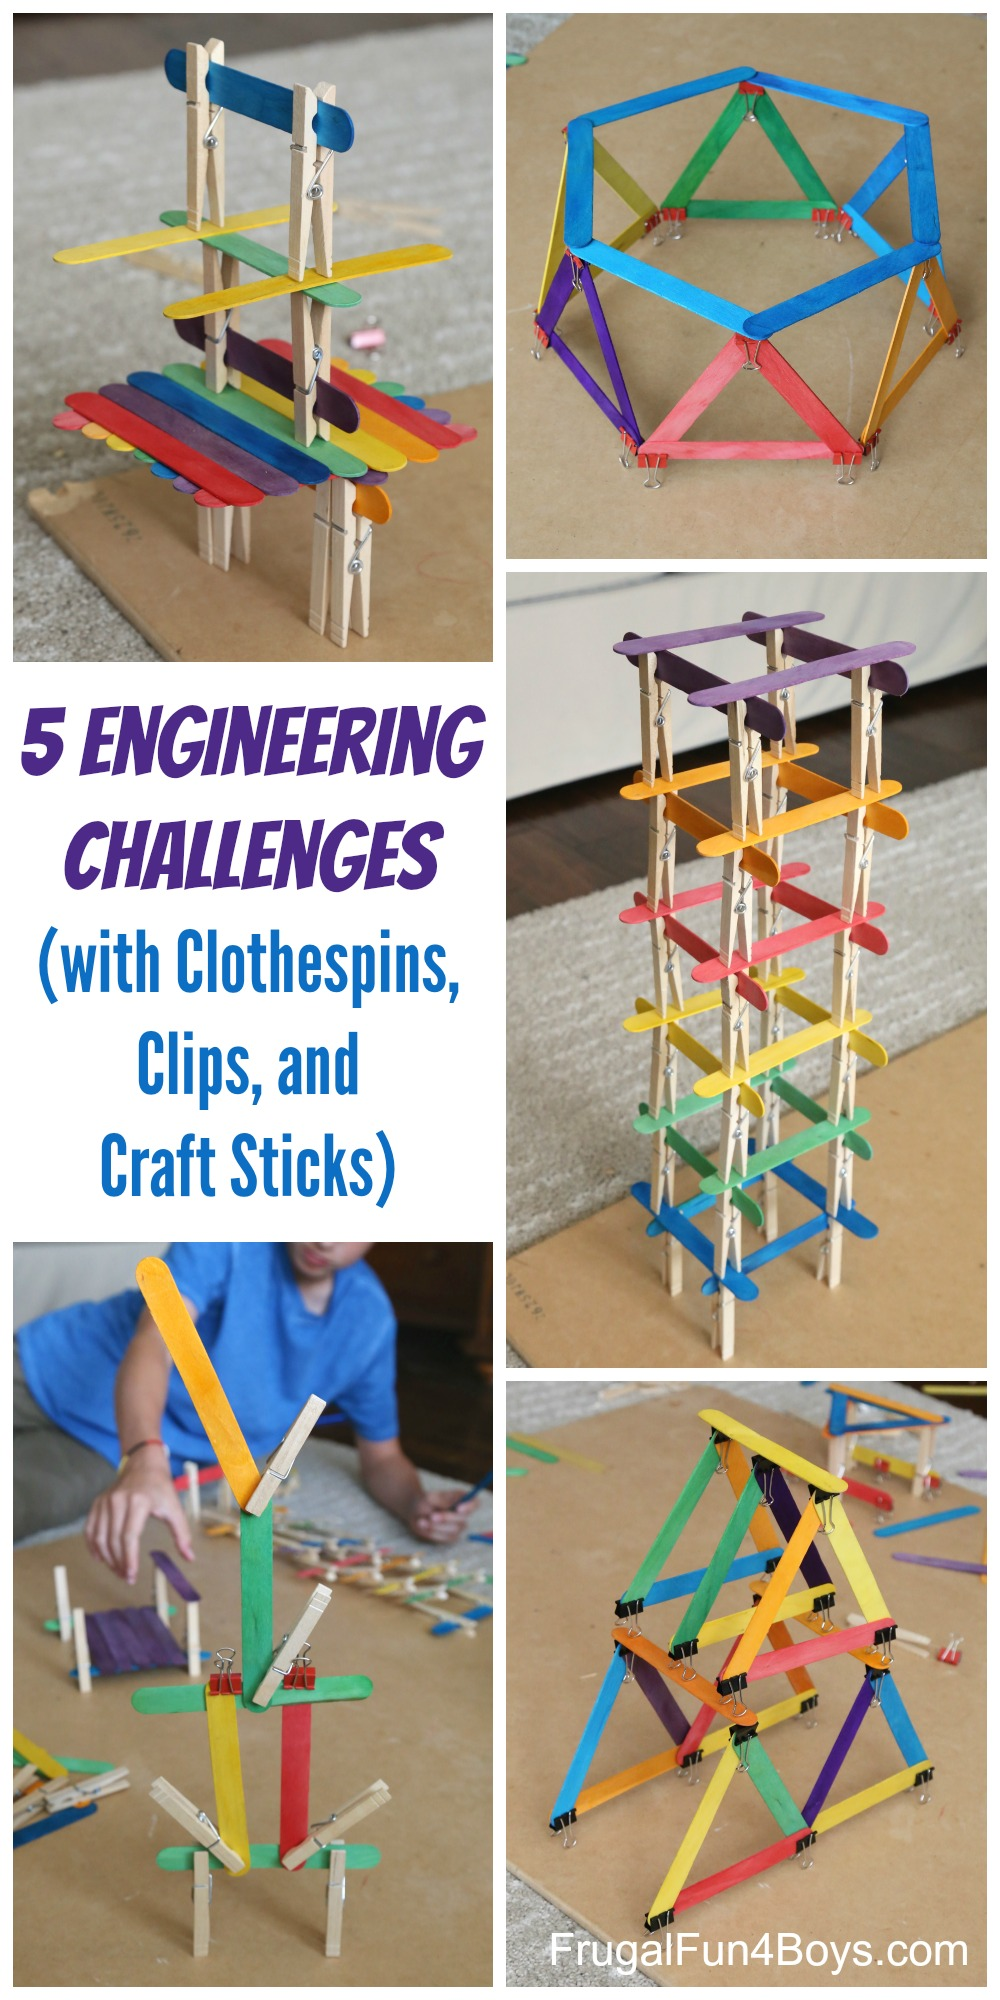 pinterest winter family photo ideas - 5 Engineering Challenges with Clothespins Binder Clips